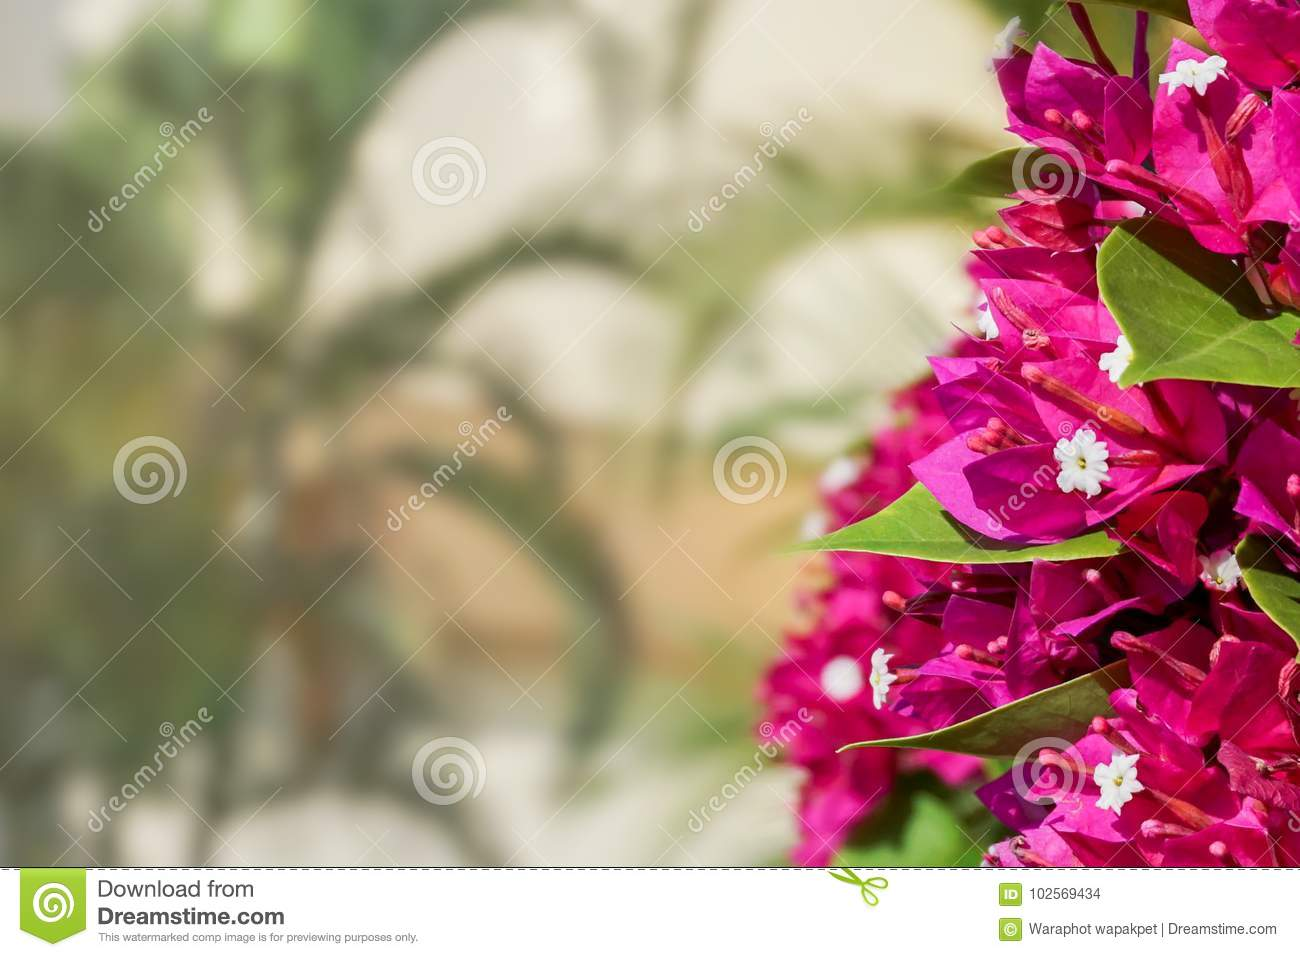 Bougainvillea Wallpaper Bougainvillea Background Stock Photo Image Of Blue 102569434